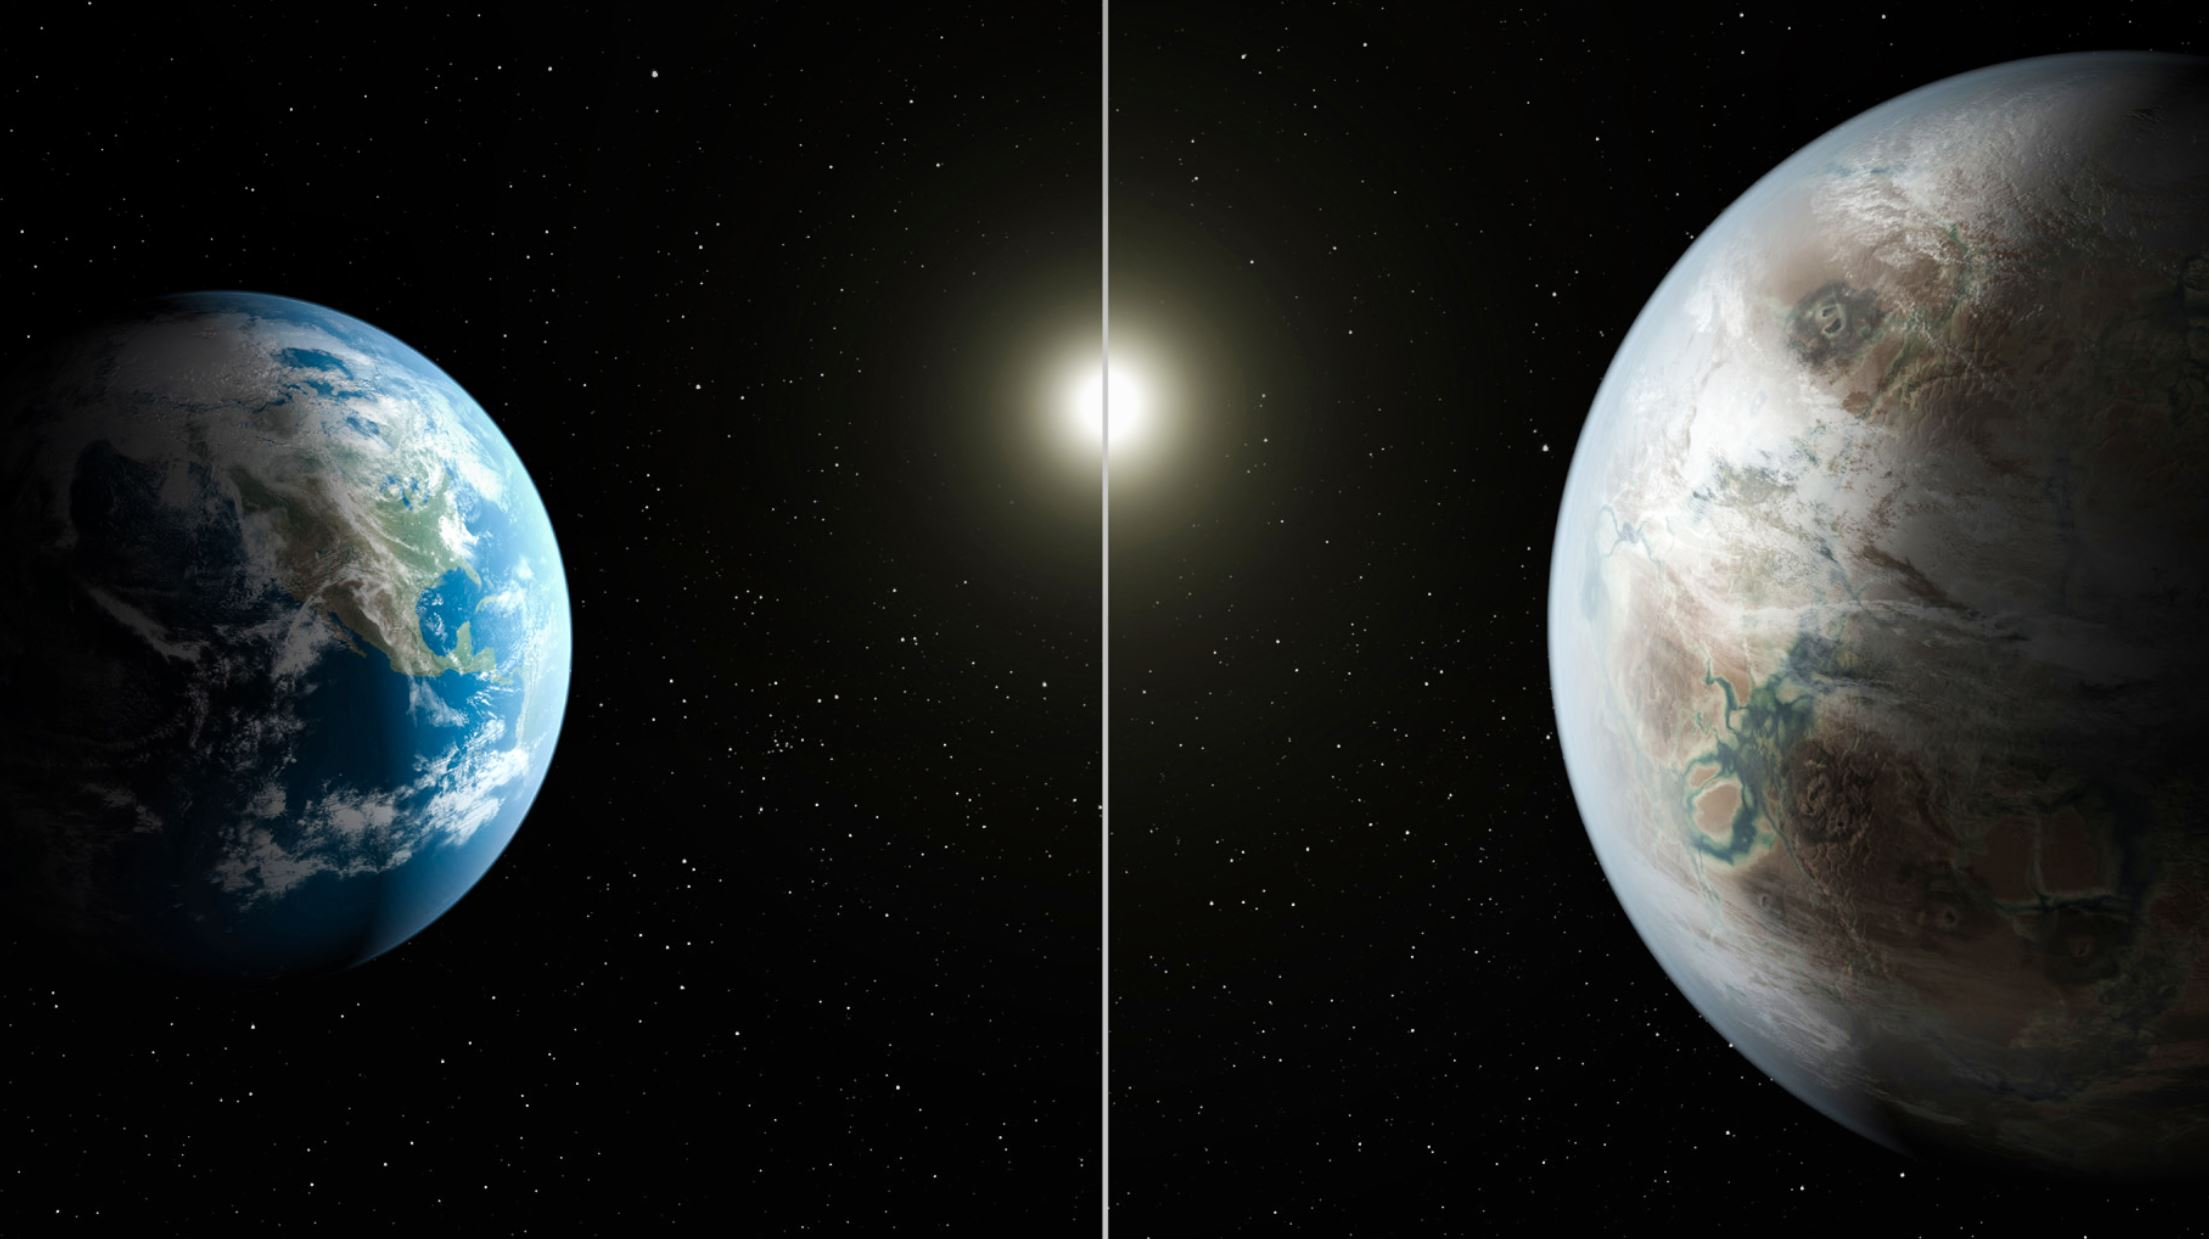 An artist comparison of earth and an exoplanet orbiting a similar star - Image Credits:  NASA/Ames/JPL-Caltech